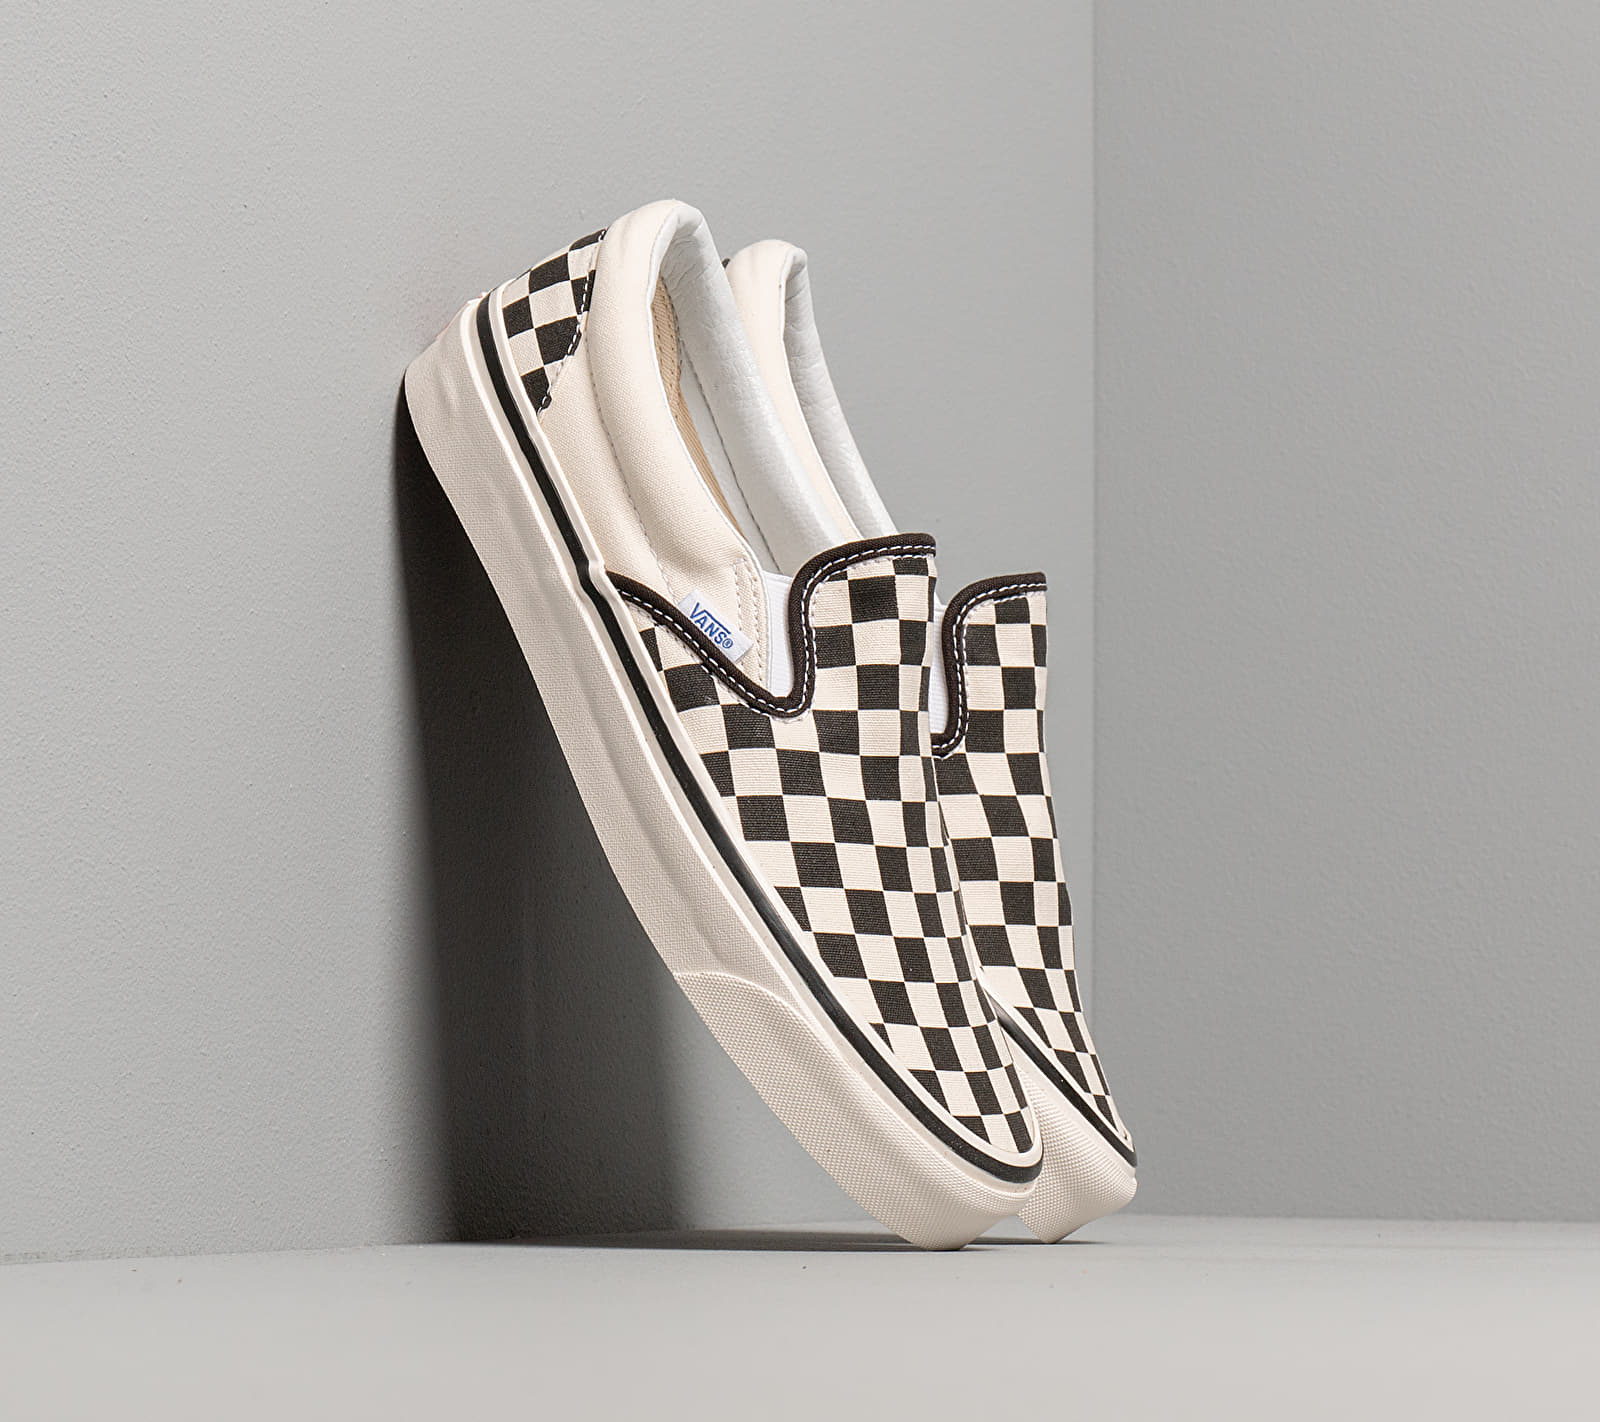 Vans OG Classic Slip-On LX (Canvas) Black/ White Checkerboard EUR 42